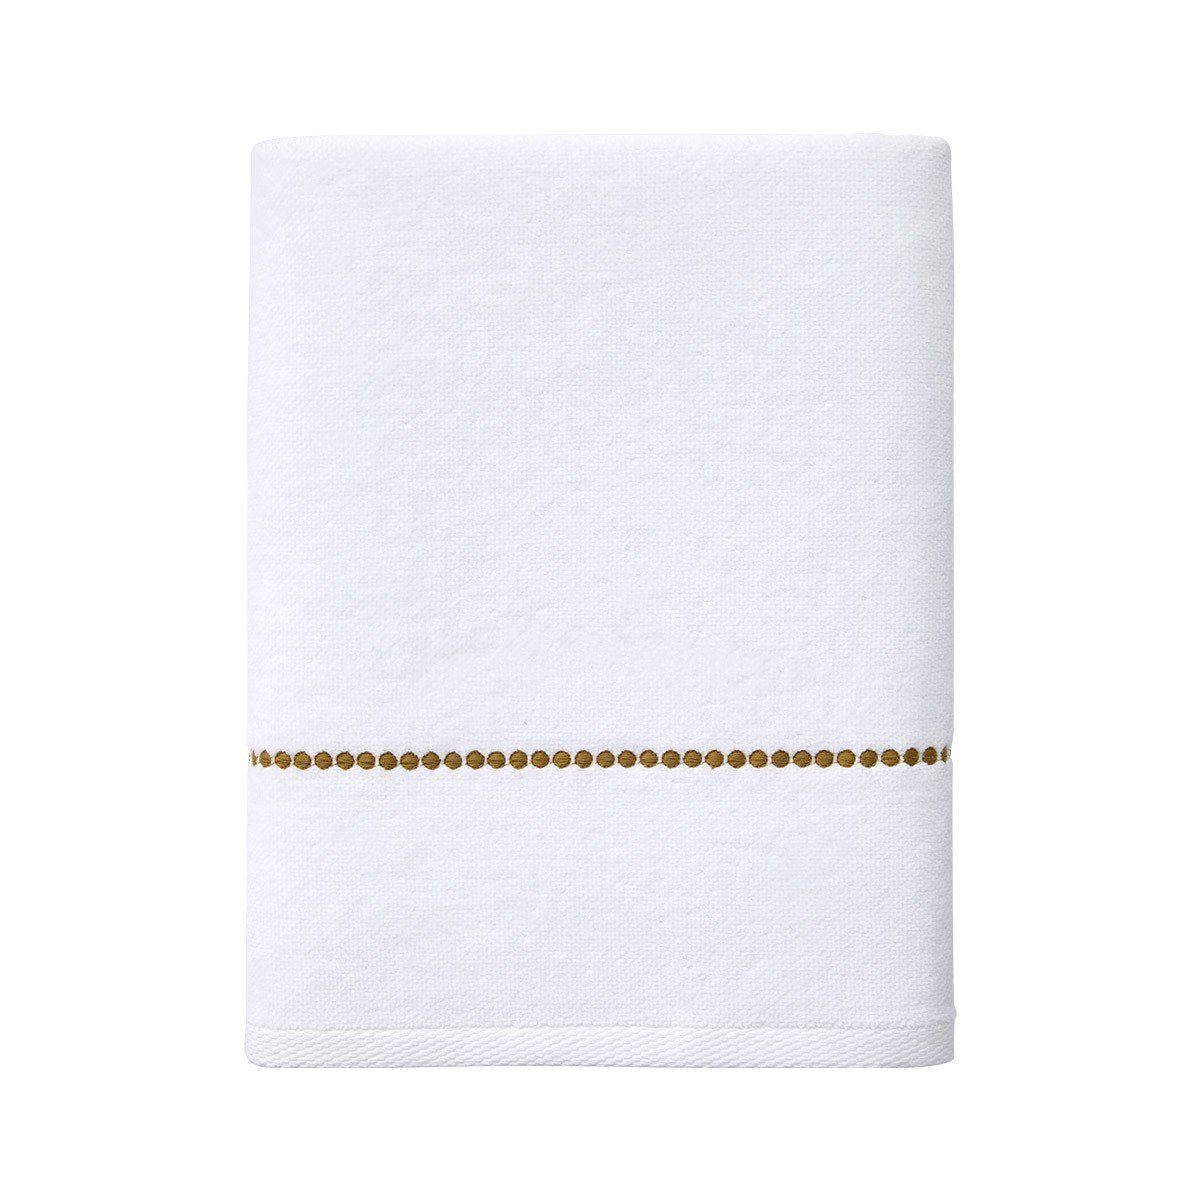 Victoire Modore Bath Towels by Yves Delorme | Fig Linens and Home